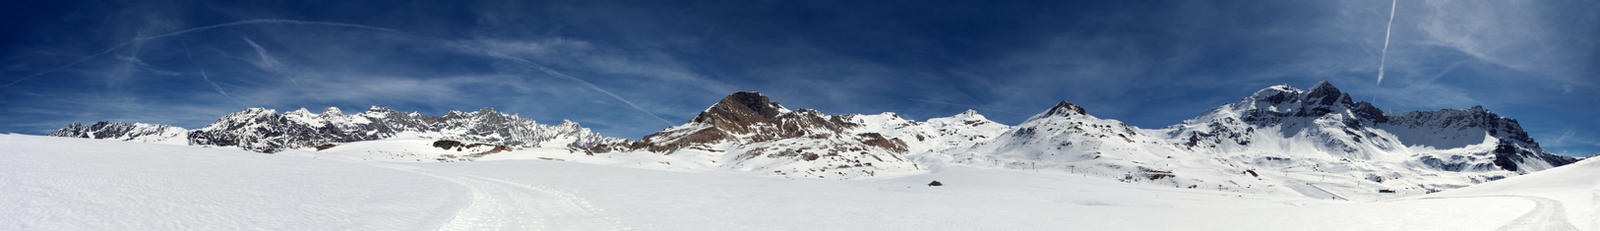 Pennine Alps Super-wide Panorama from Salette by Sarahorsomeone